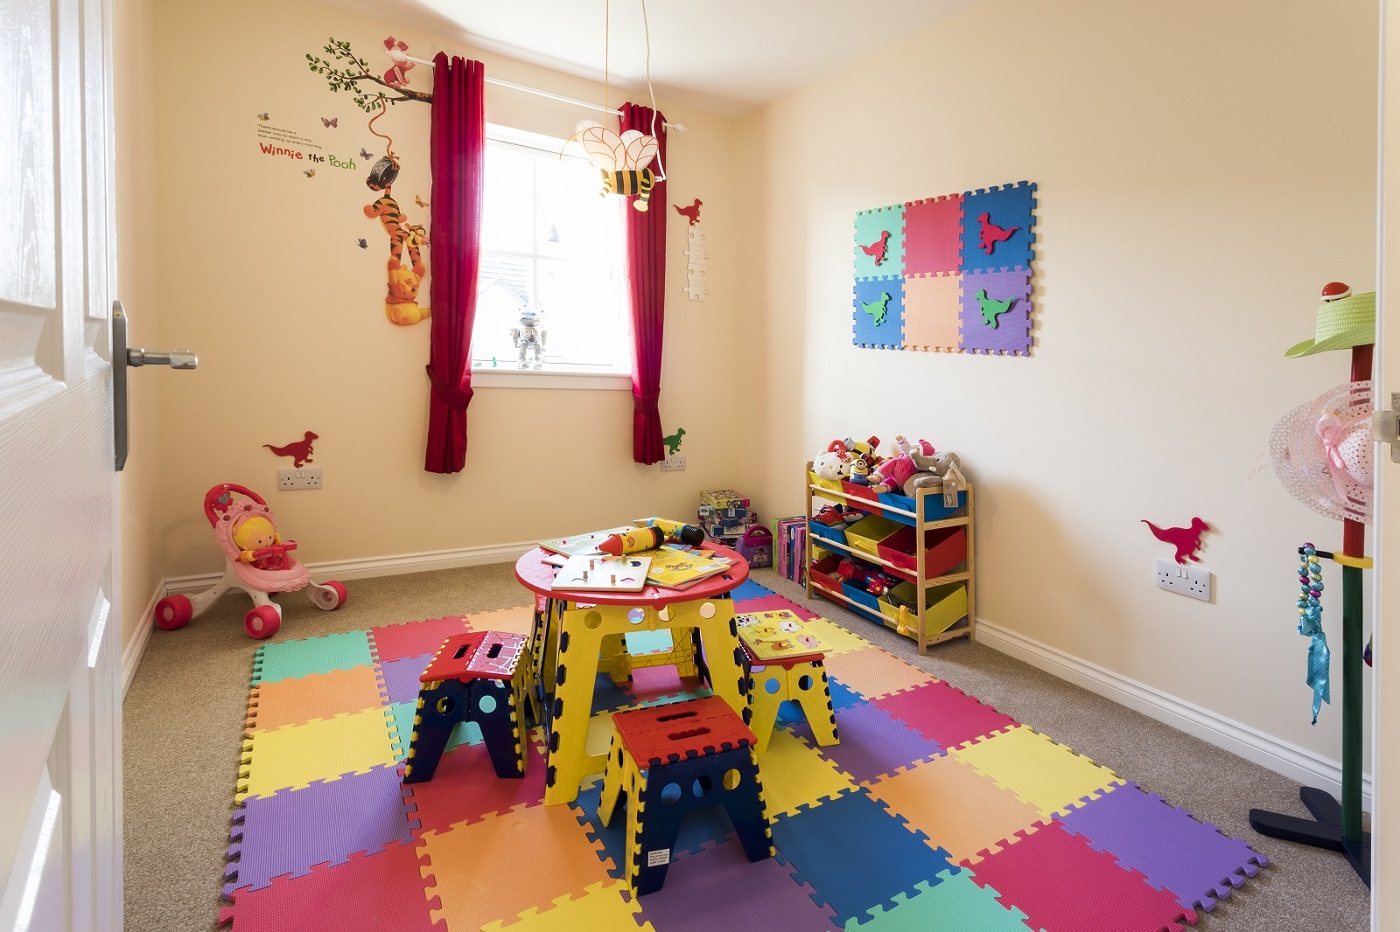 14-Cairnwell-playroom-bedroom-3